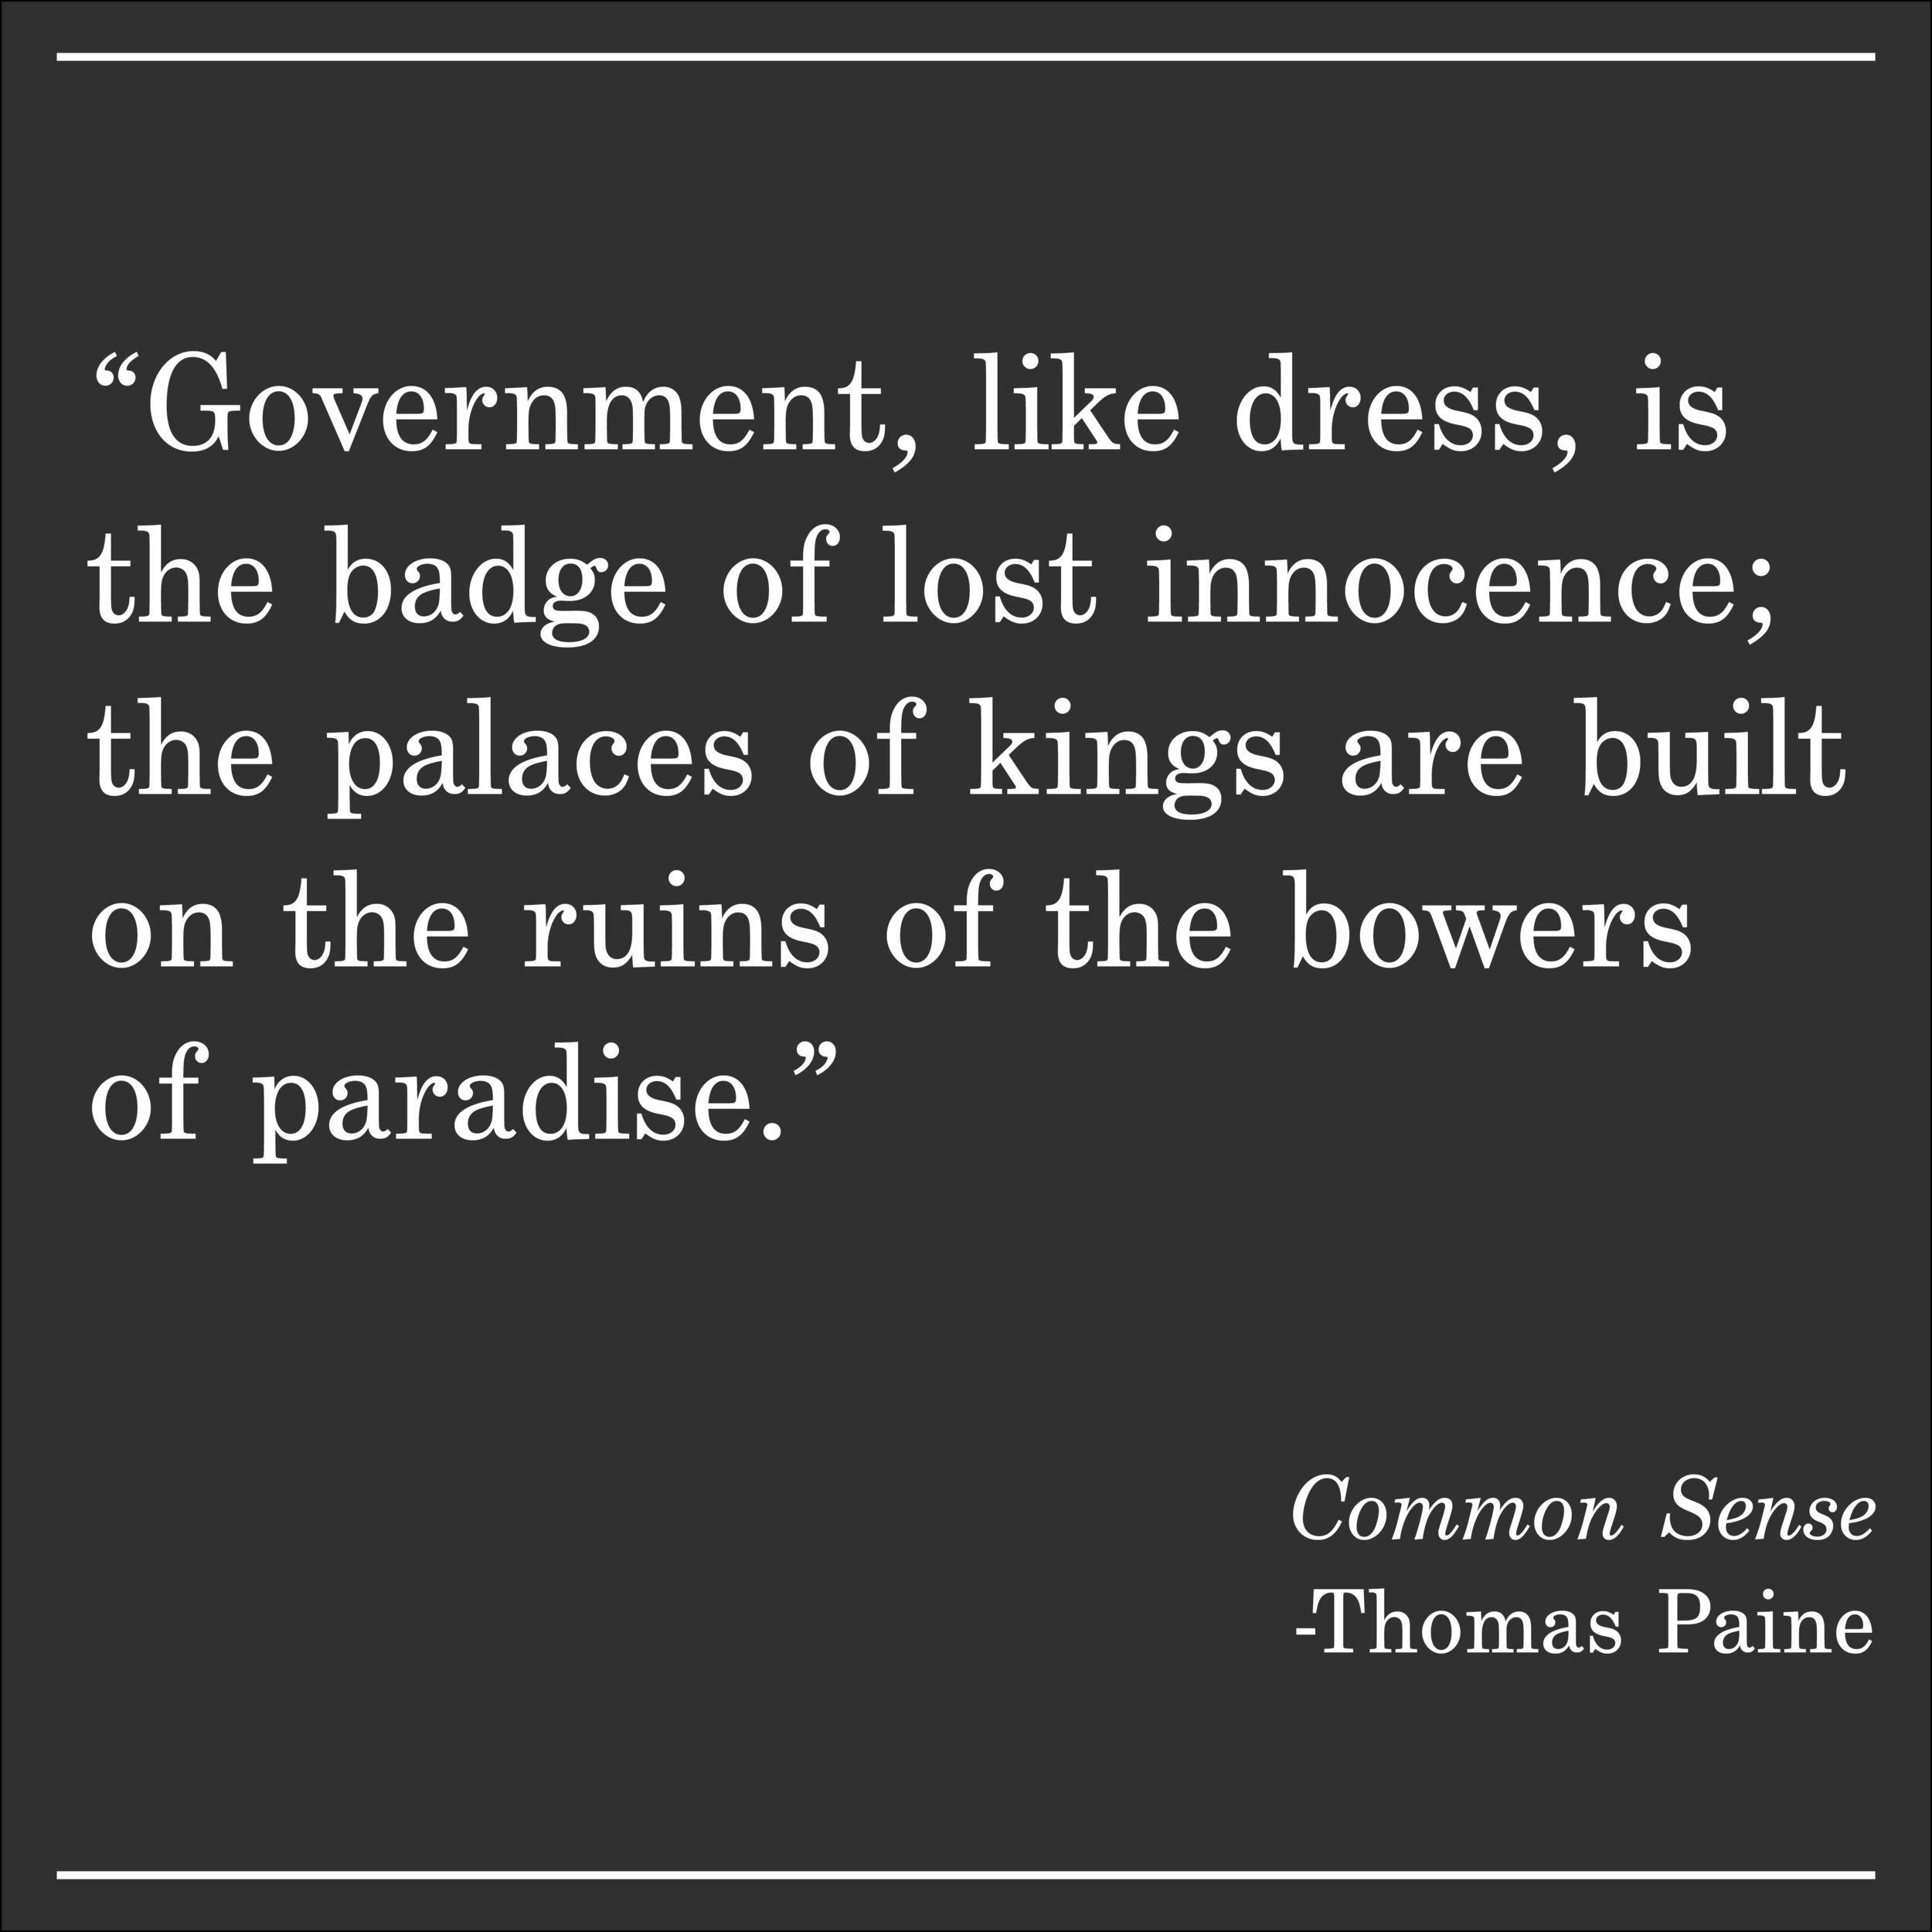 Daily Quote Thomas Paine Common Sense